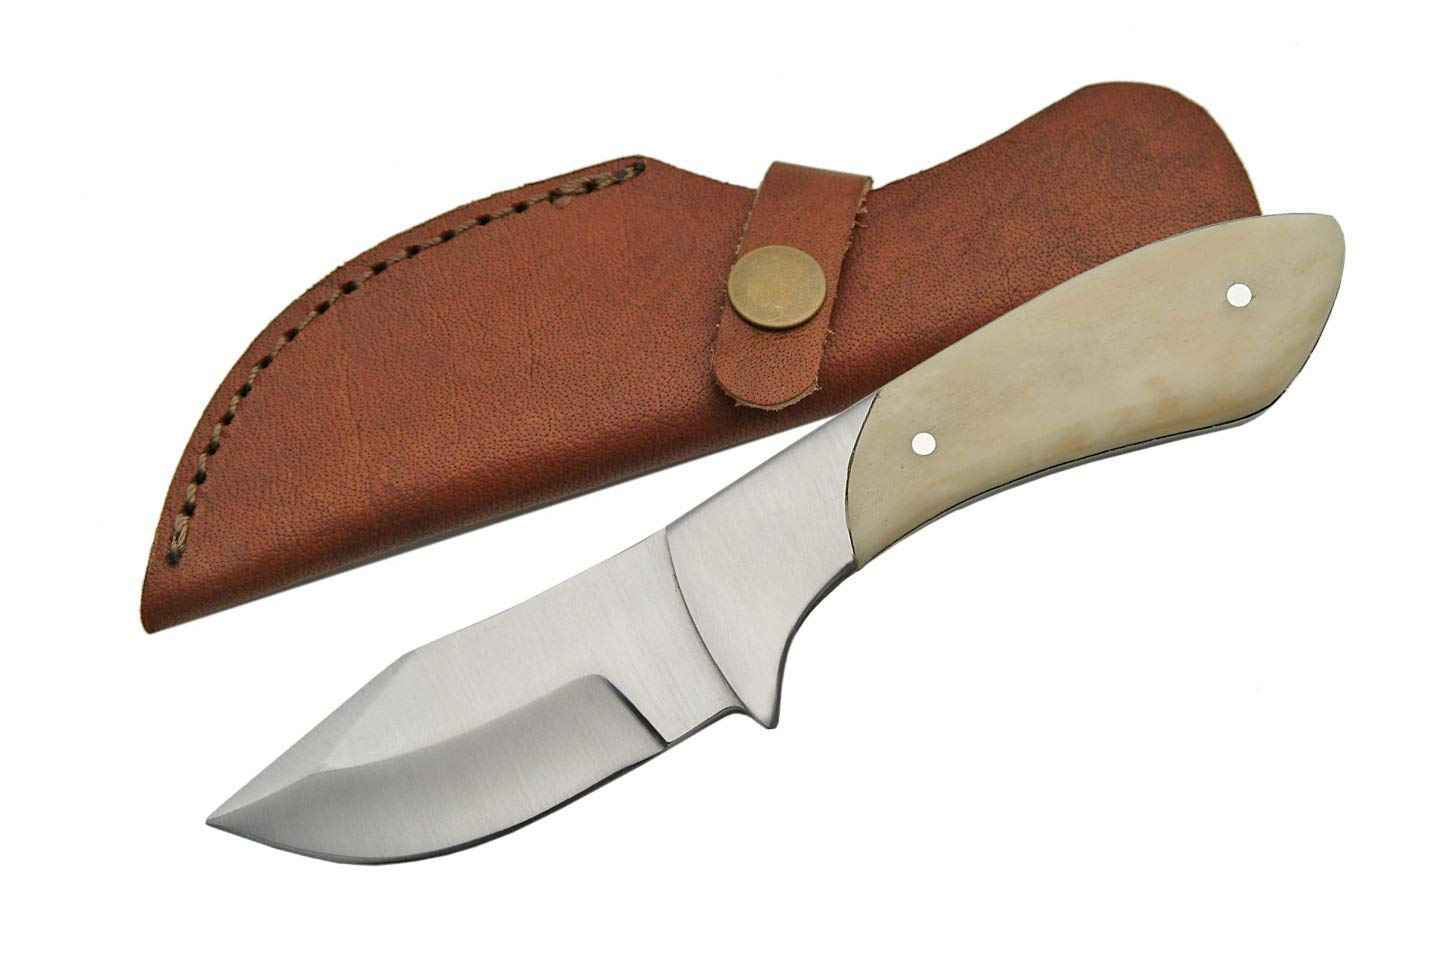 SZCO Supplies Bone Skinner Knife